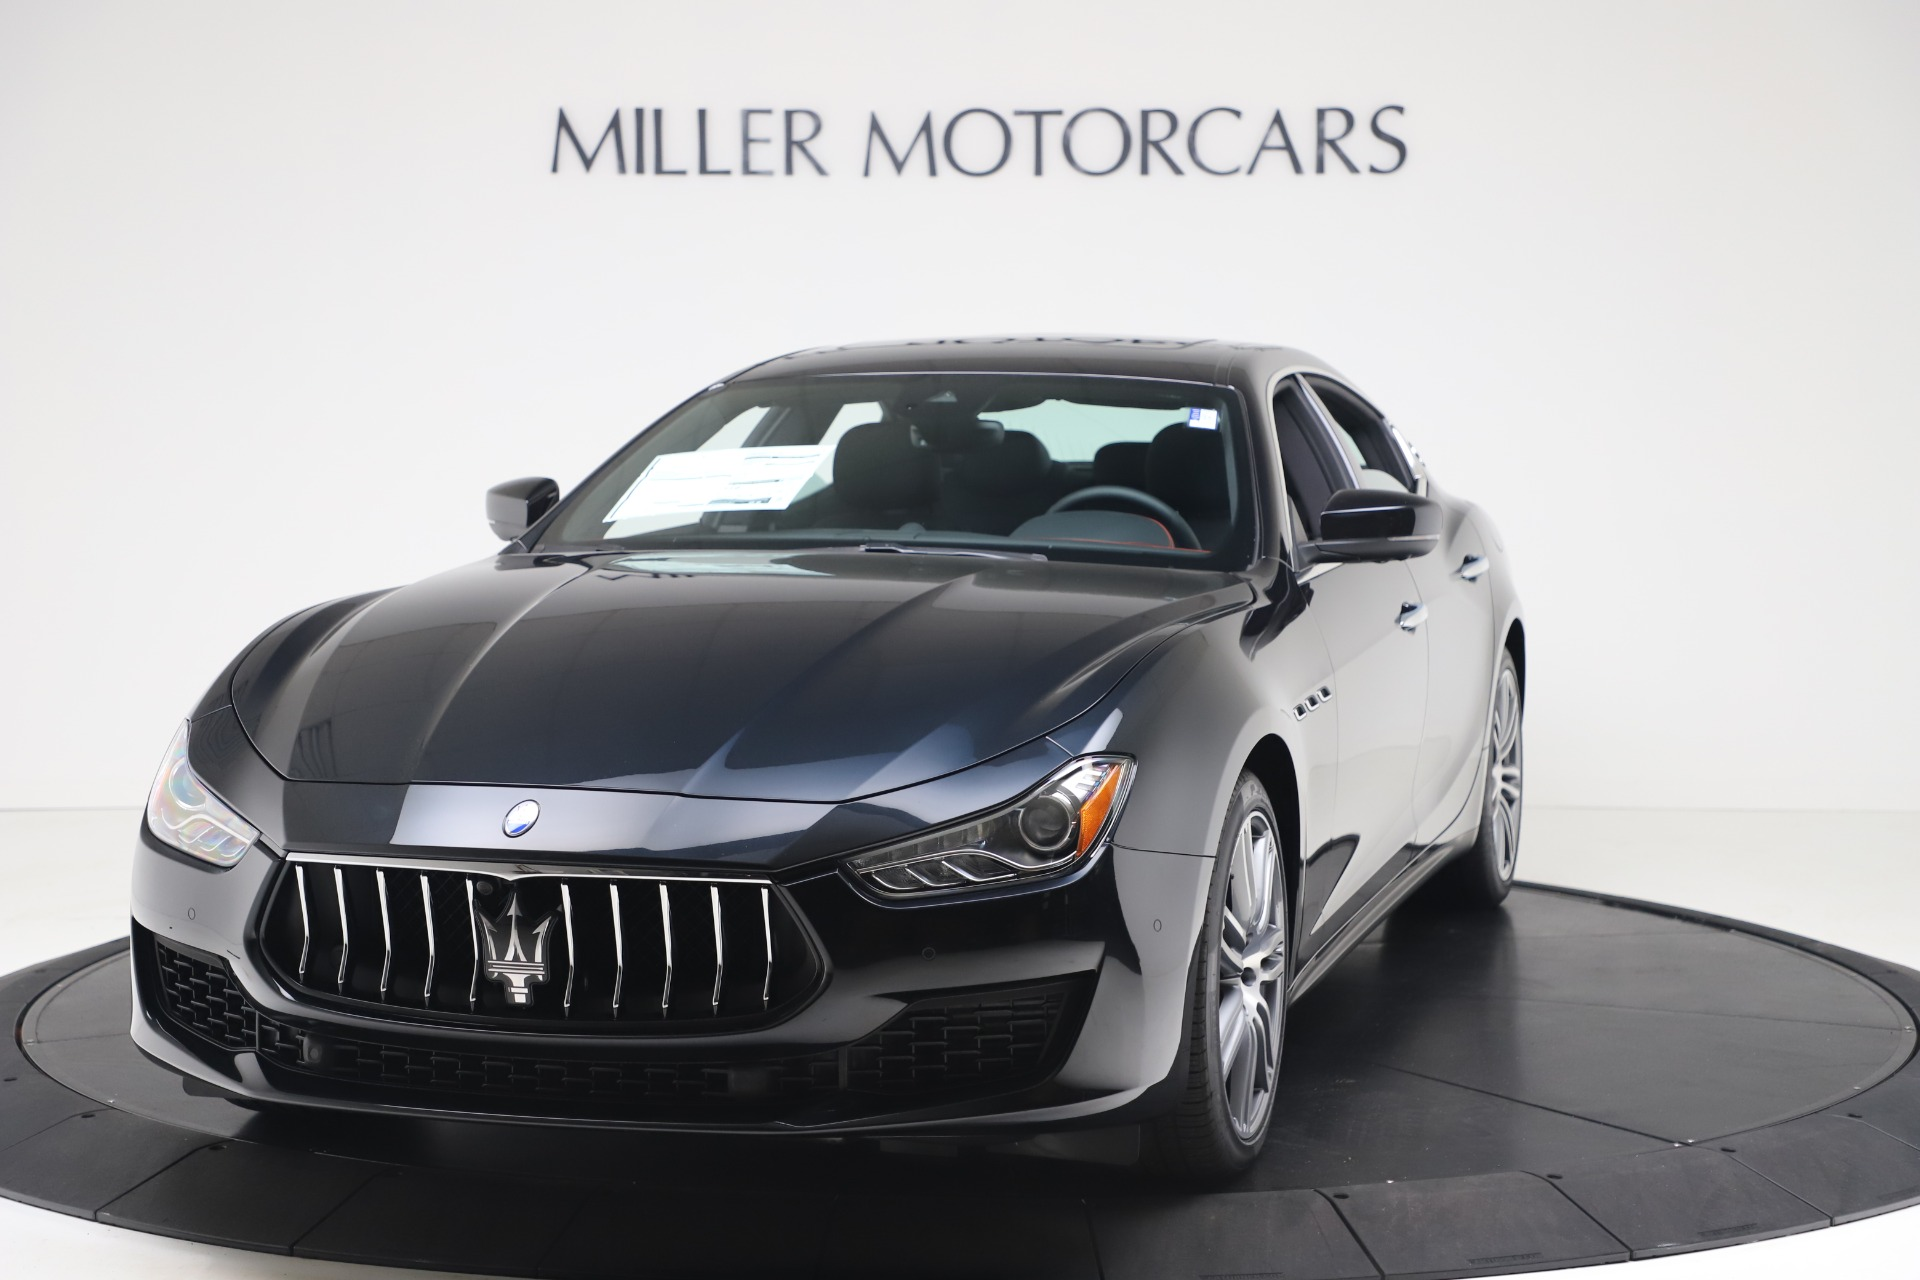 New 2020 Maserati Ghibli S Q4 for sale Sold at Rolls-Royce Motor Cars Greenwich in Greenwich CT 06830 1